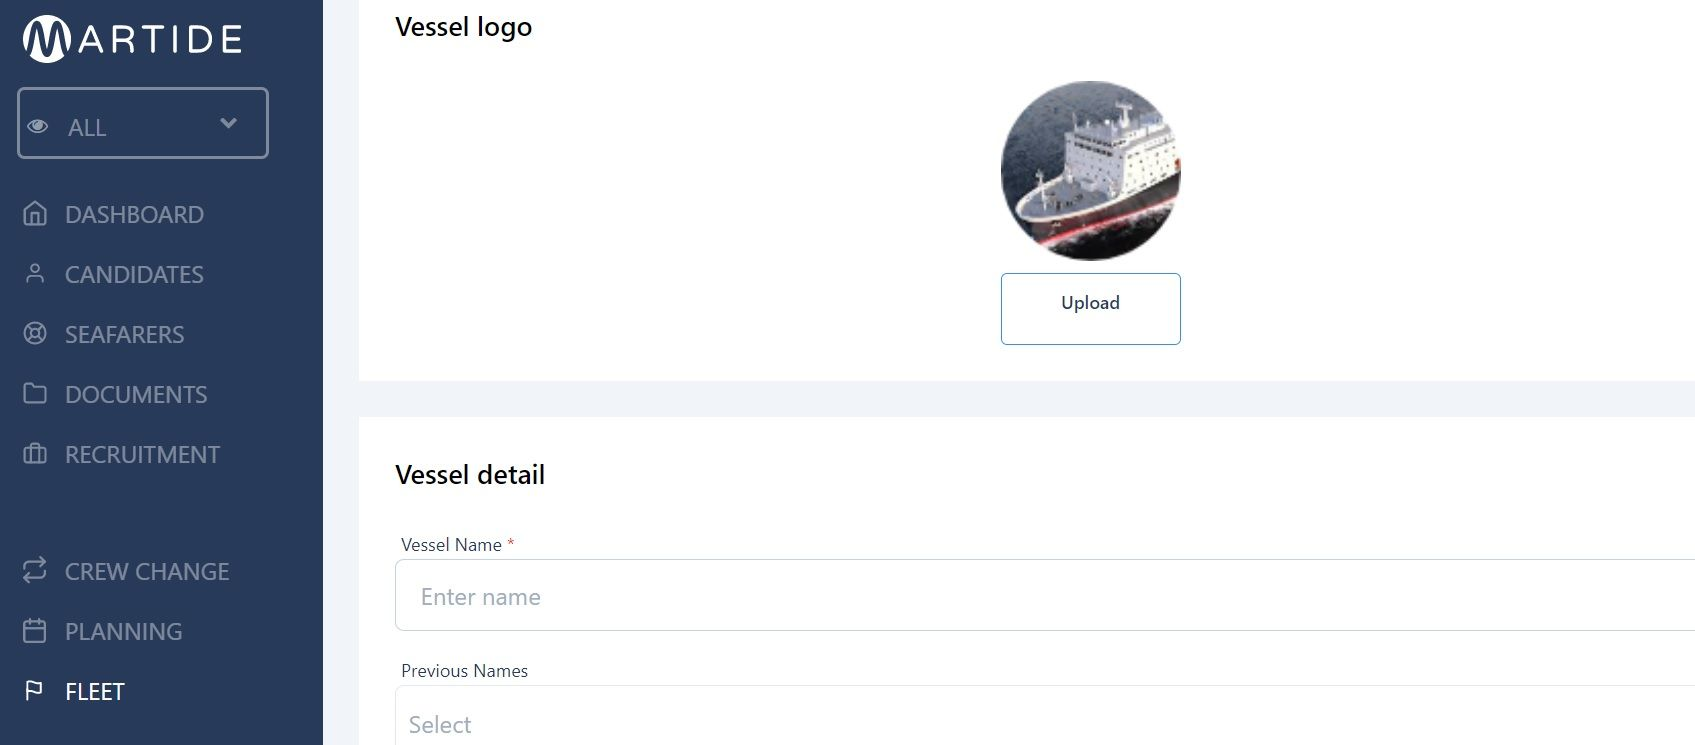 screenshot of Martide maritime recruitment website showing a new vessel page